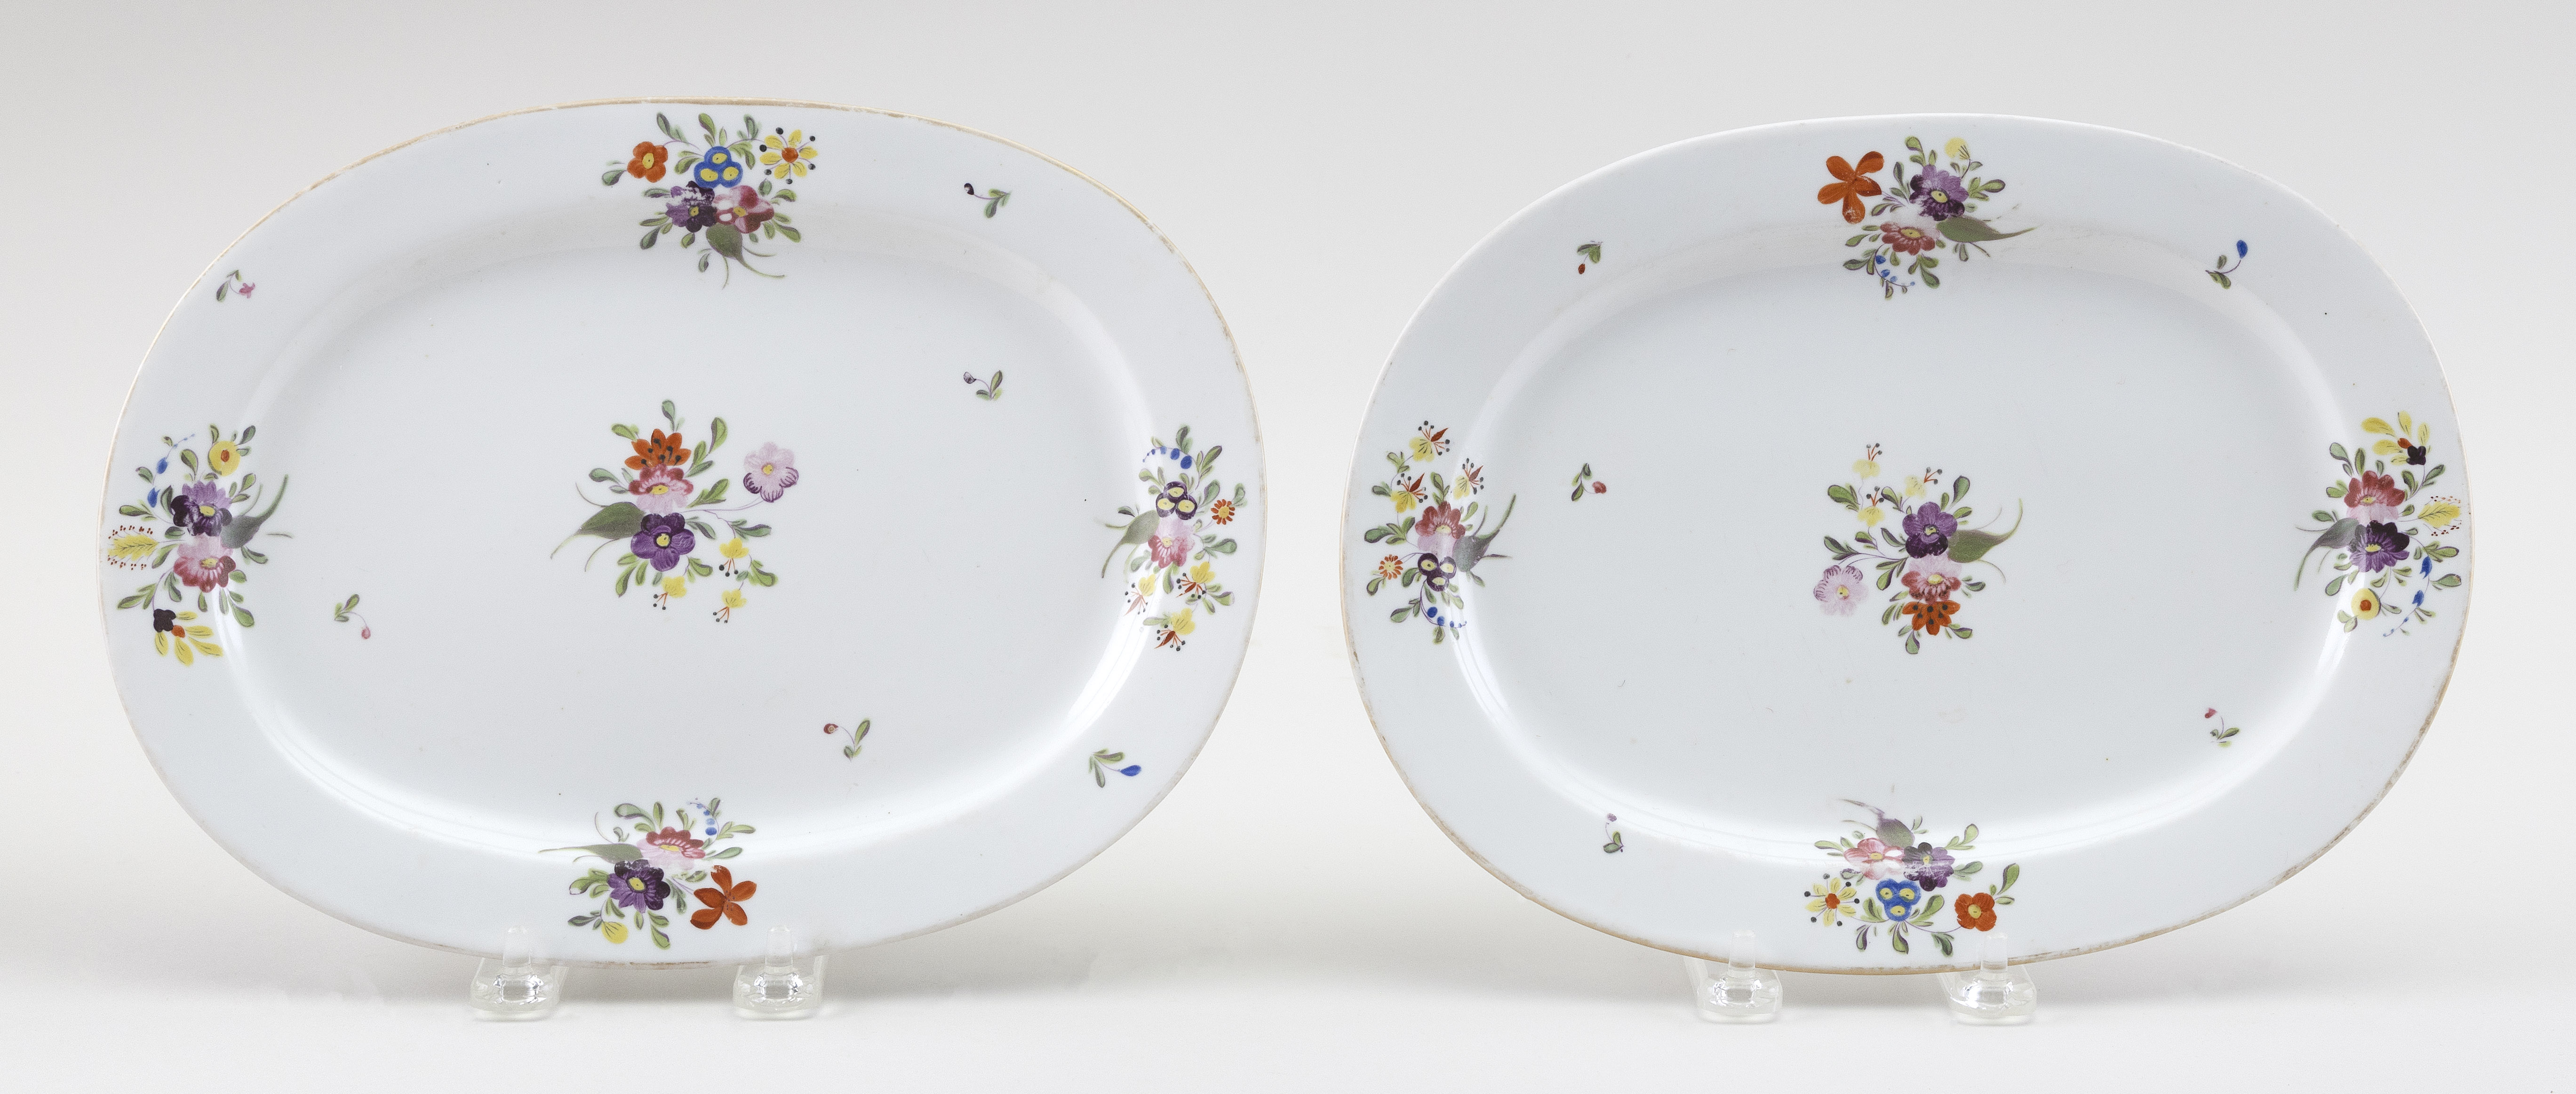 """PAIR OF ENGLISH PORCELAIN SERVING DISHES Circa 1800 Lengths 10.25""""."""